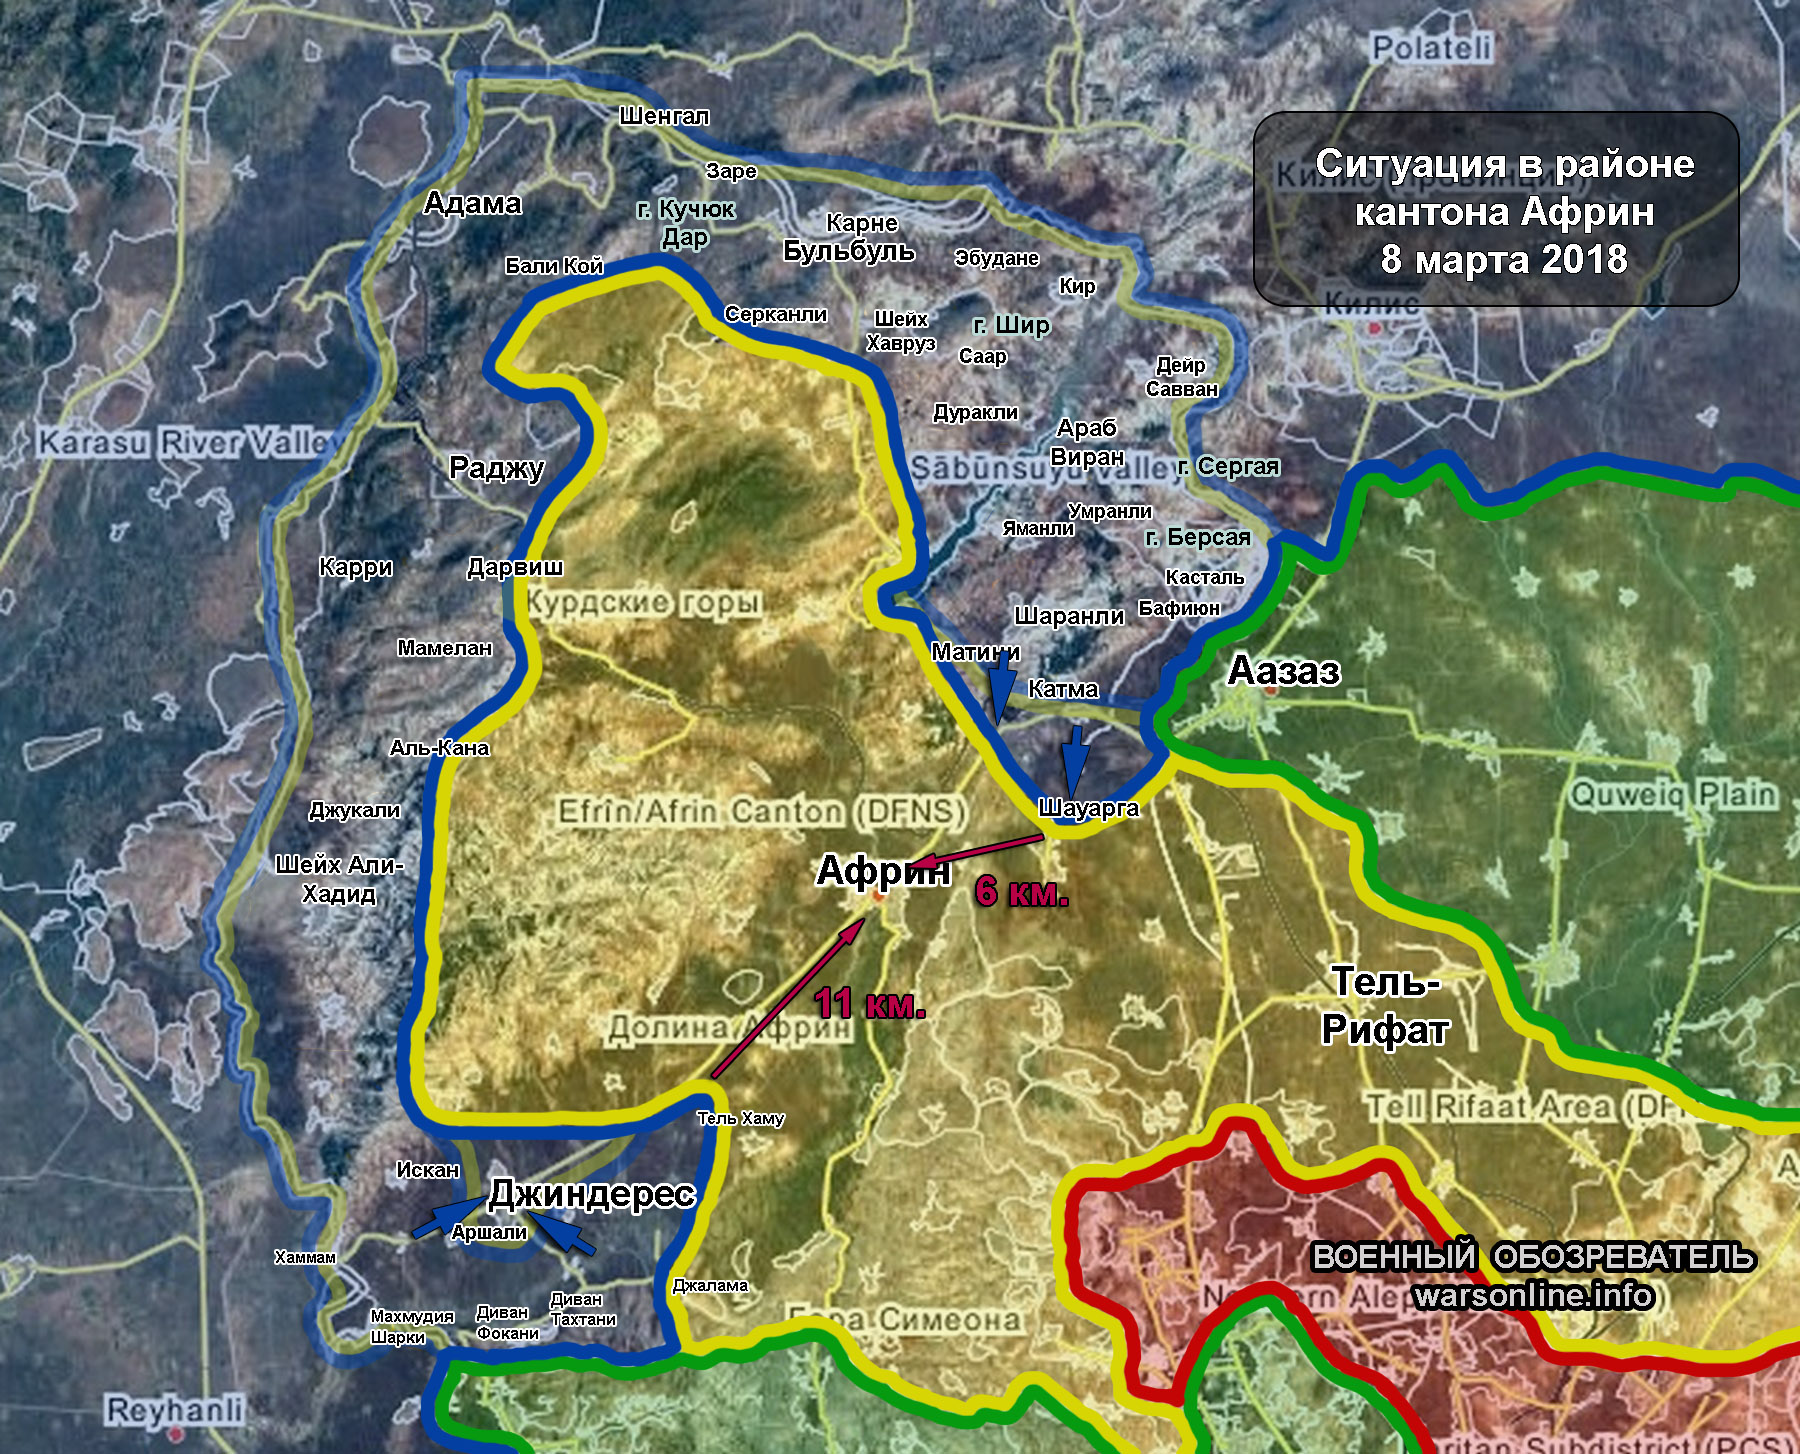 http://warsonline.info/images/stories/news/18/03mar/syria/aleppo/afrin080318map1.jpg